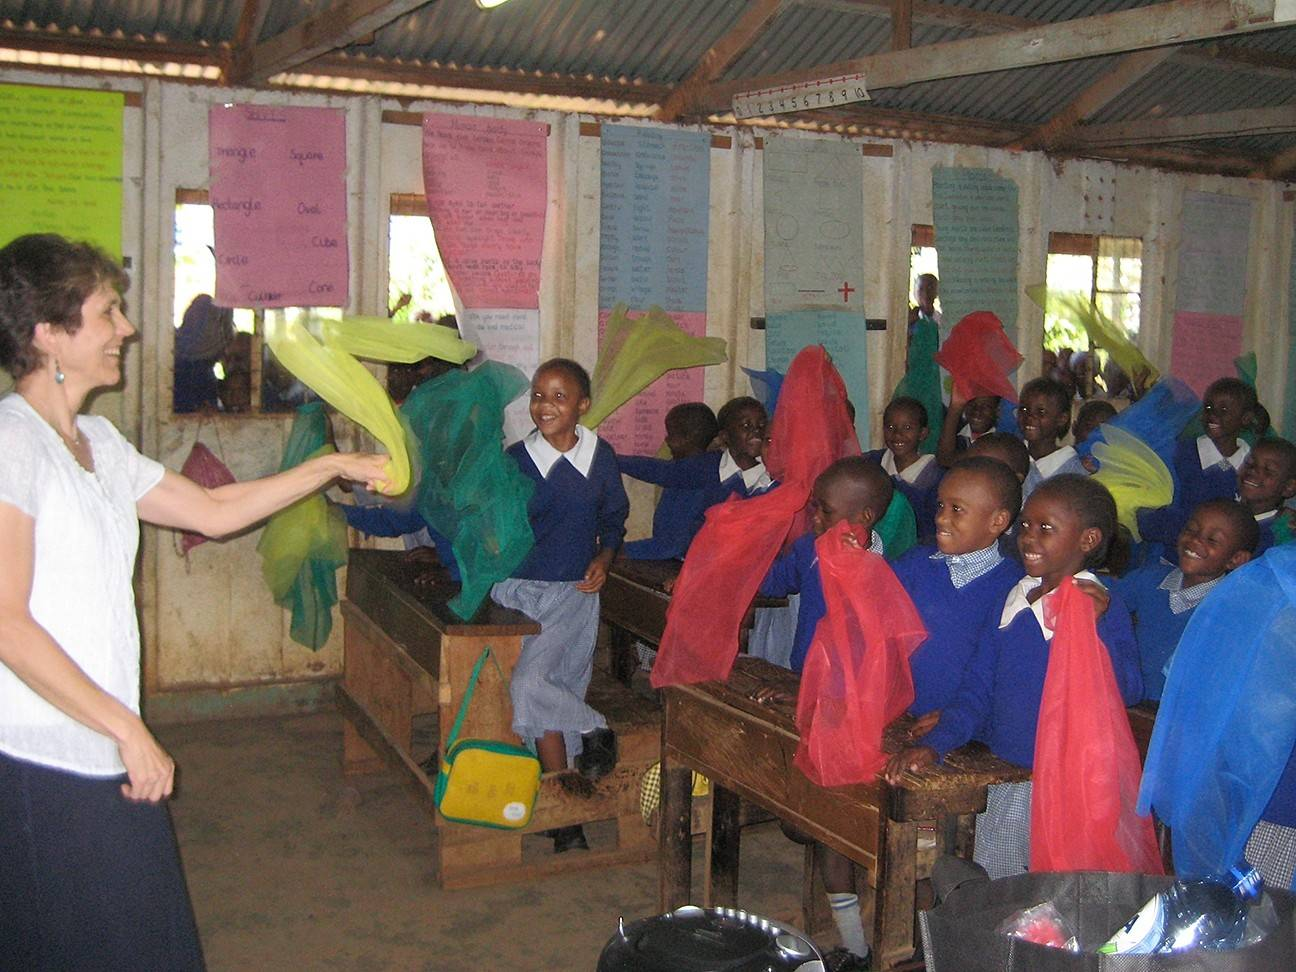 Kathy Cathey, a music instructor in the Community School of the Arts at Wheaton College, teaches music during a visit to Kinyago-Dandora School in the slums of Nairobi, Kenya.